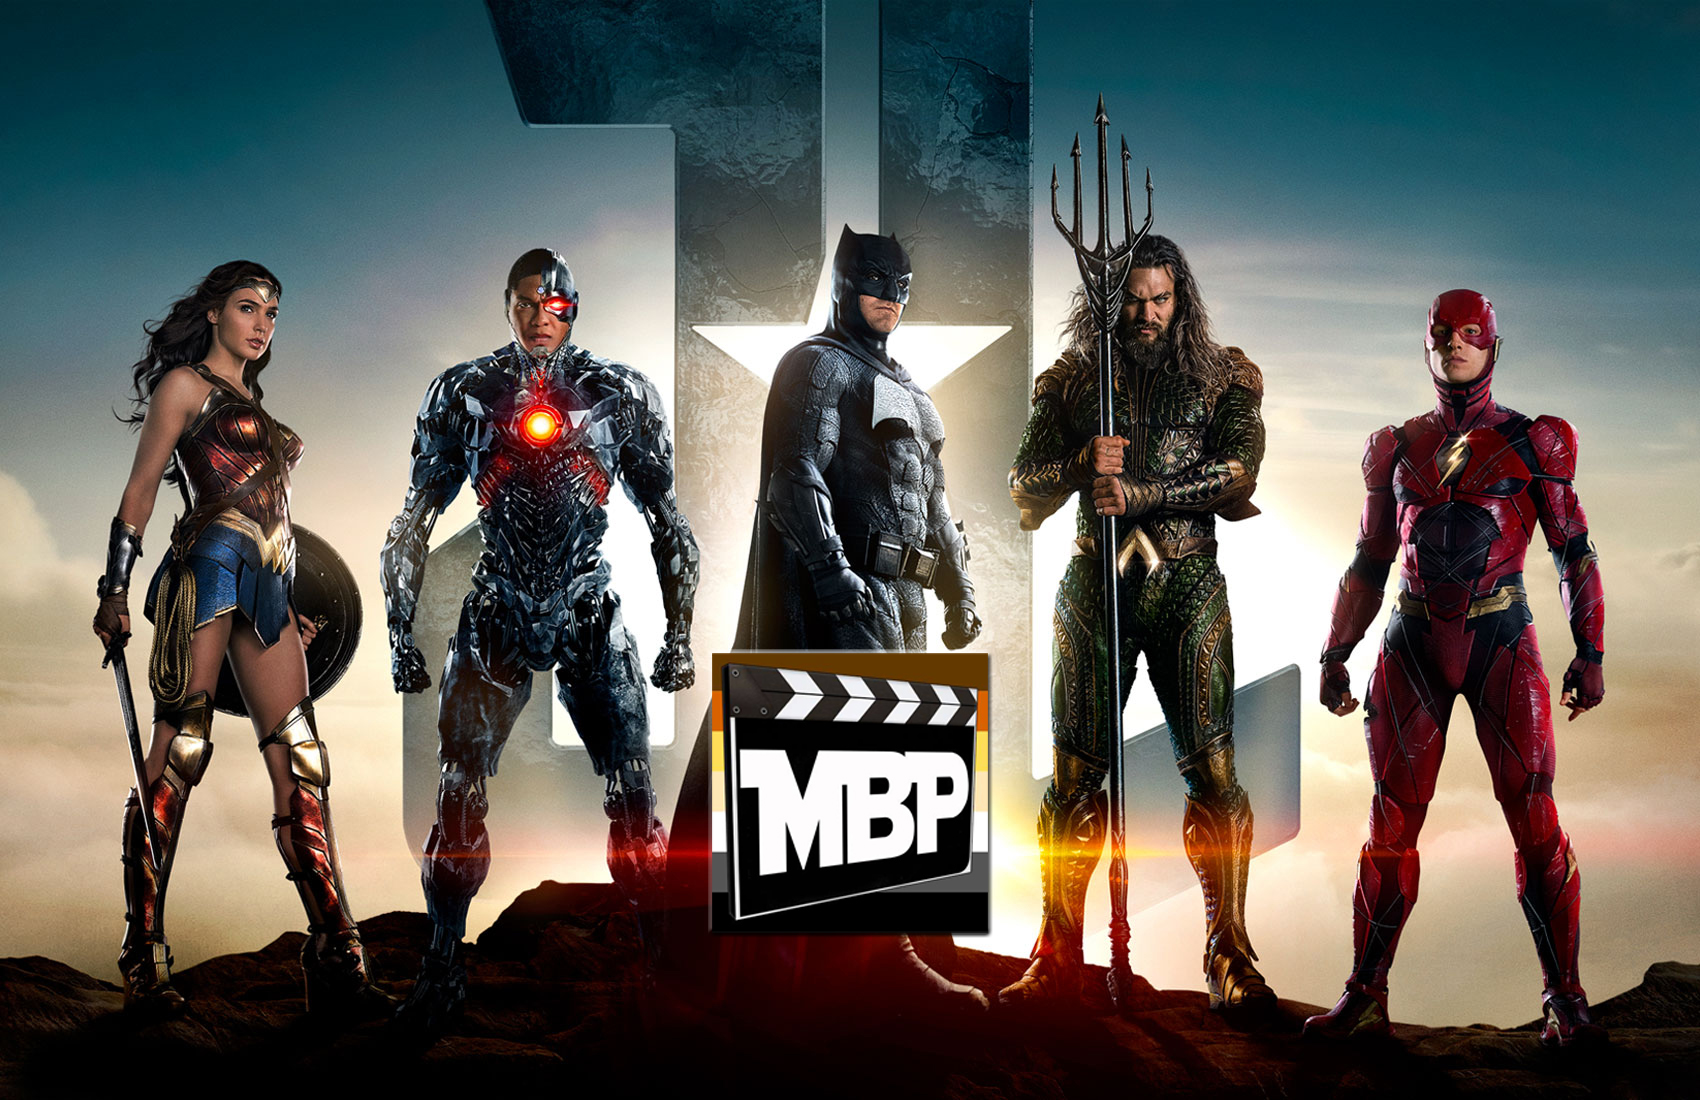 MBP e260 - 'Justice League' (11/17/17)    On this week's episode of the Movie Bears Podcast, we unite the team by having Bill Zanowitz of the Comic Book Bears Podcast join Brad, Jim, and Will to review the latest DC superhero movie, 'Justice League.' Click through to listen!